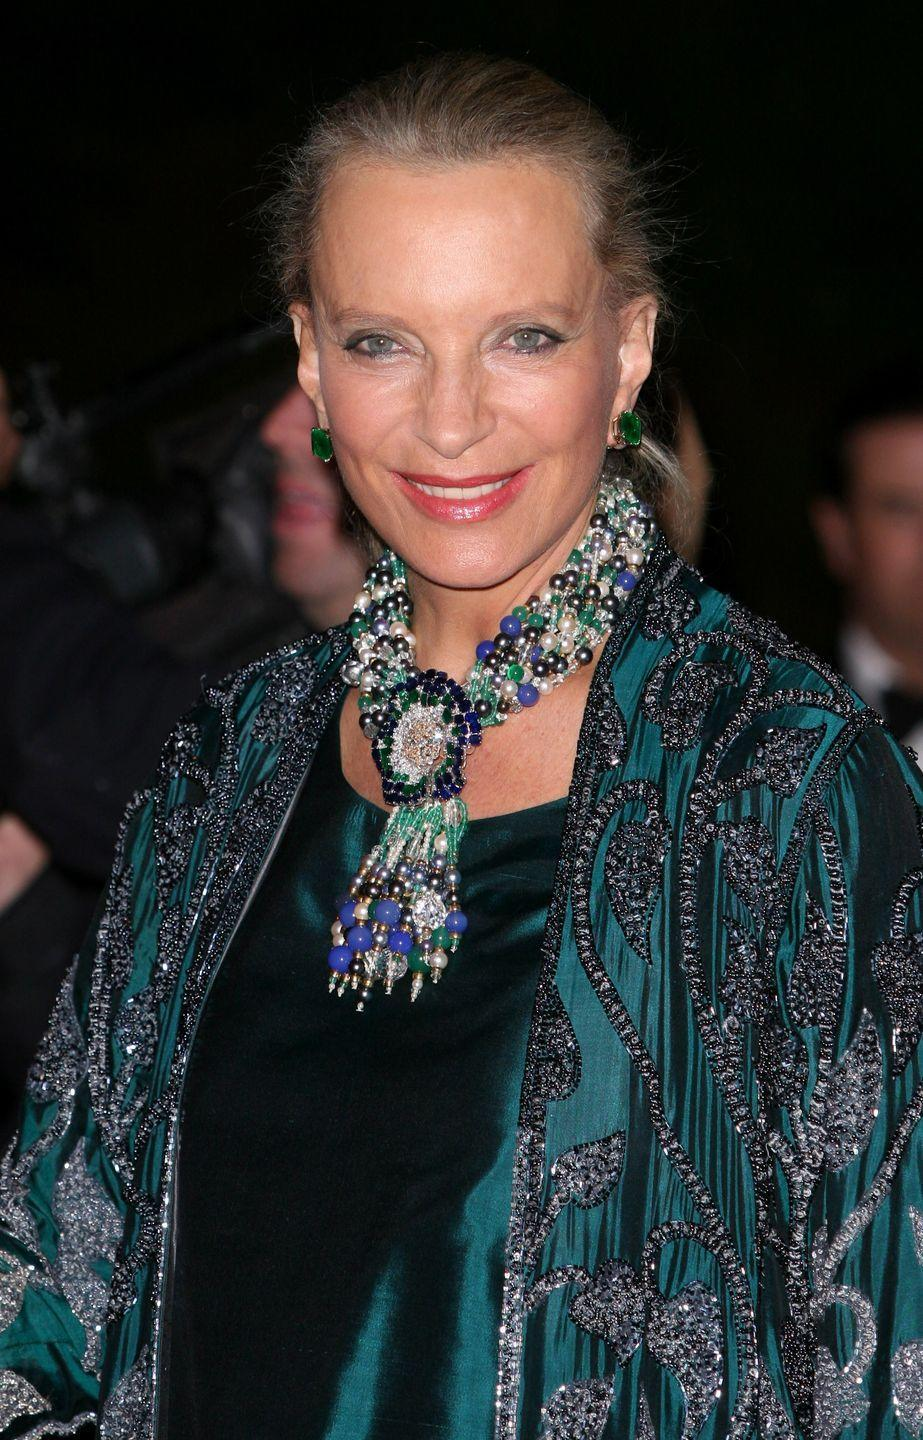 <p>Here, Princess Michael of Kent wears the Cartier pansy brooch as part of a necklace. </p>